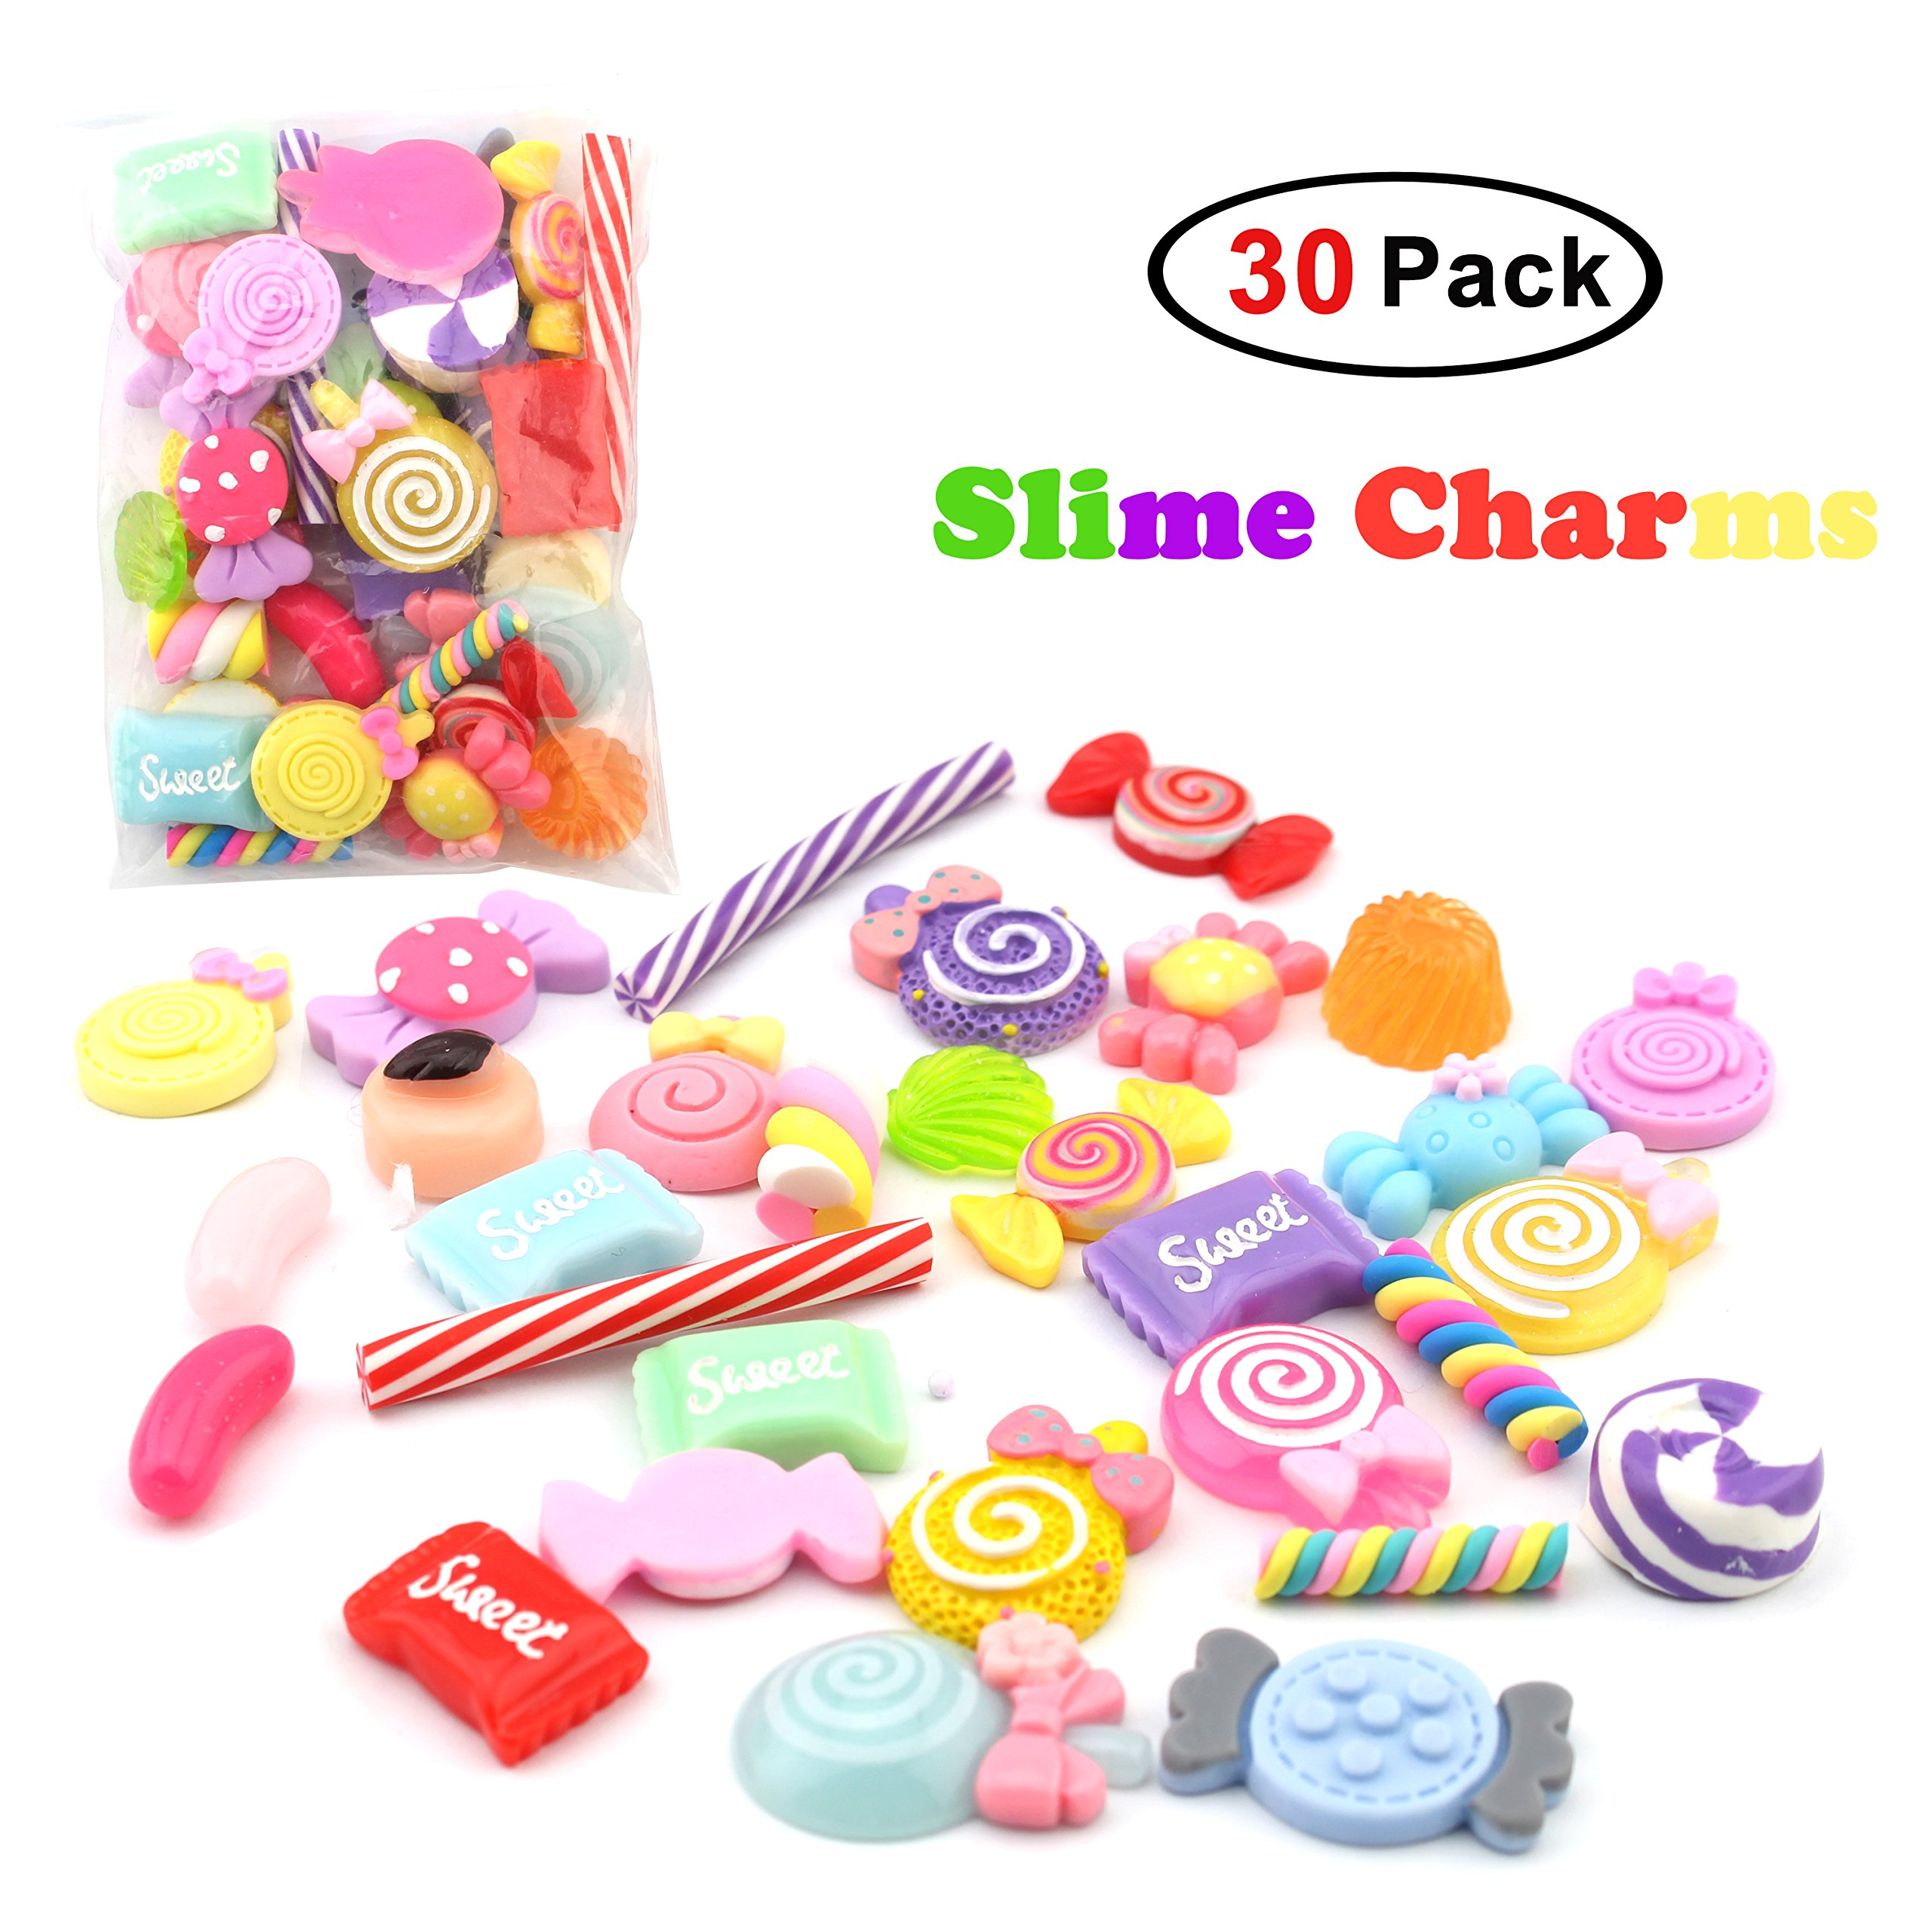 30 Pack Slime Charms For DIY Slime Making, Mixed Assorted Sweet Candies 30 Pieces of Slime Beads, DIY Arts Crafts Slime Accessories (Slime Charms 30 Pack)